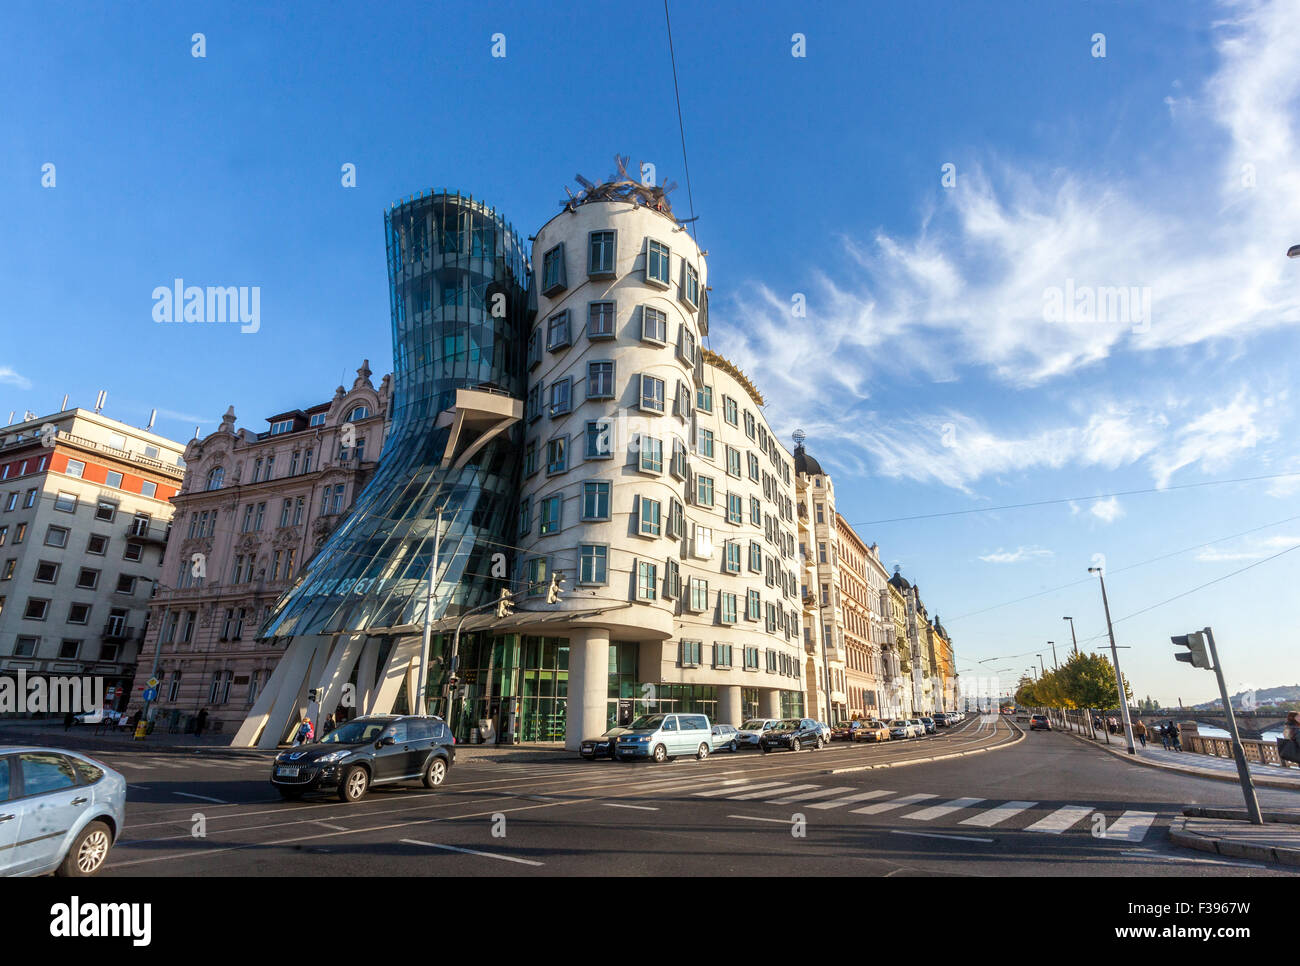 The Dancing House designed by Frank Gehry, Prague, Czech Republic, Europe